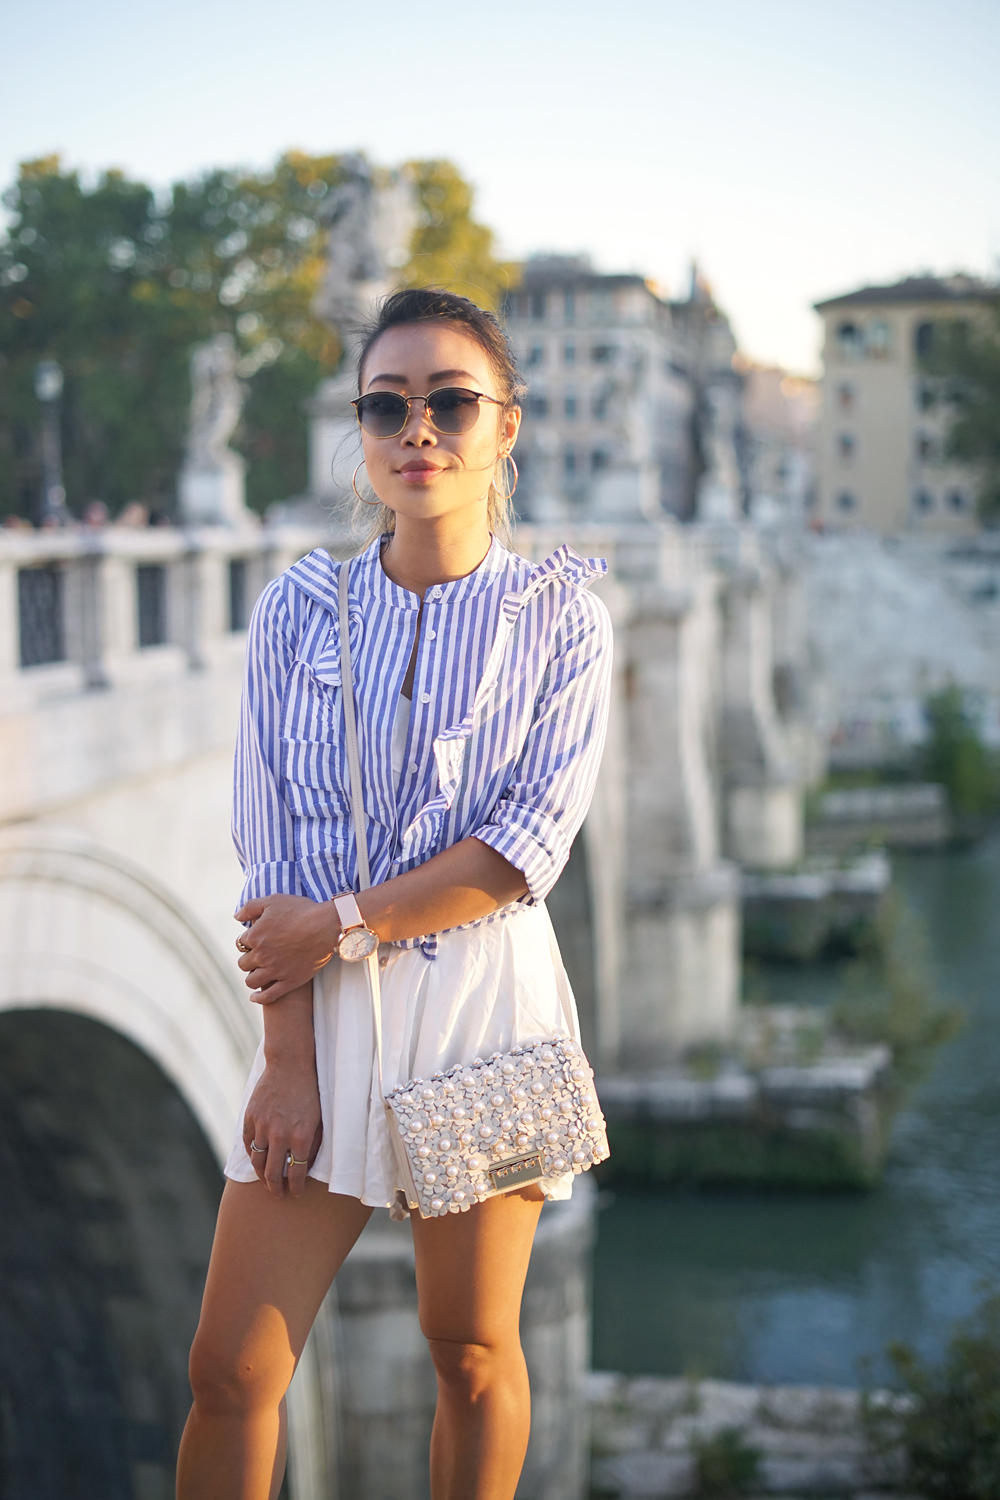 04rome-pontesantangelo-bridge-travel-ootd